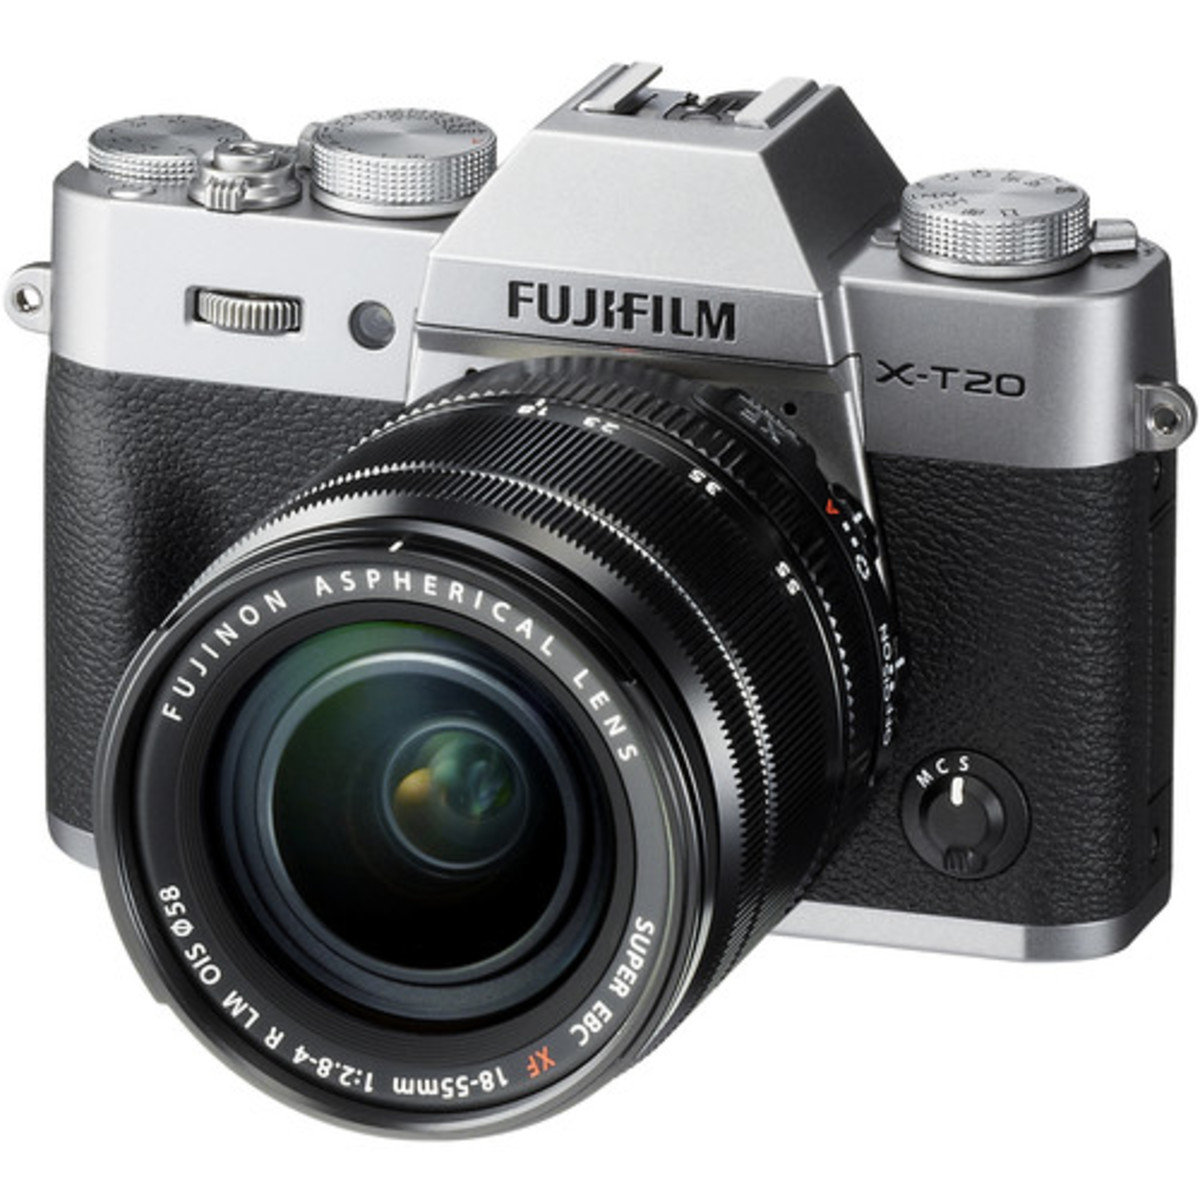 Fujifilm X-T20 Mirrorless Digital Camera with XF 18-55mm Lens - [Silver] (Parallel imported)